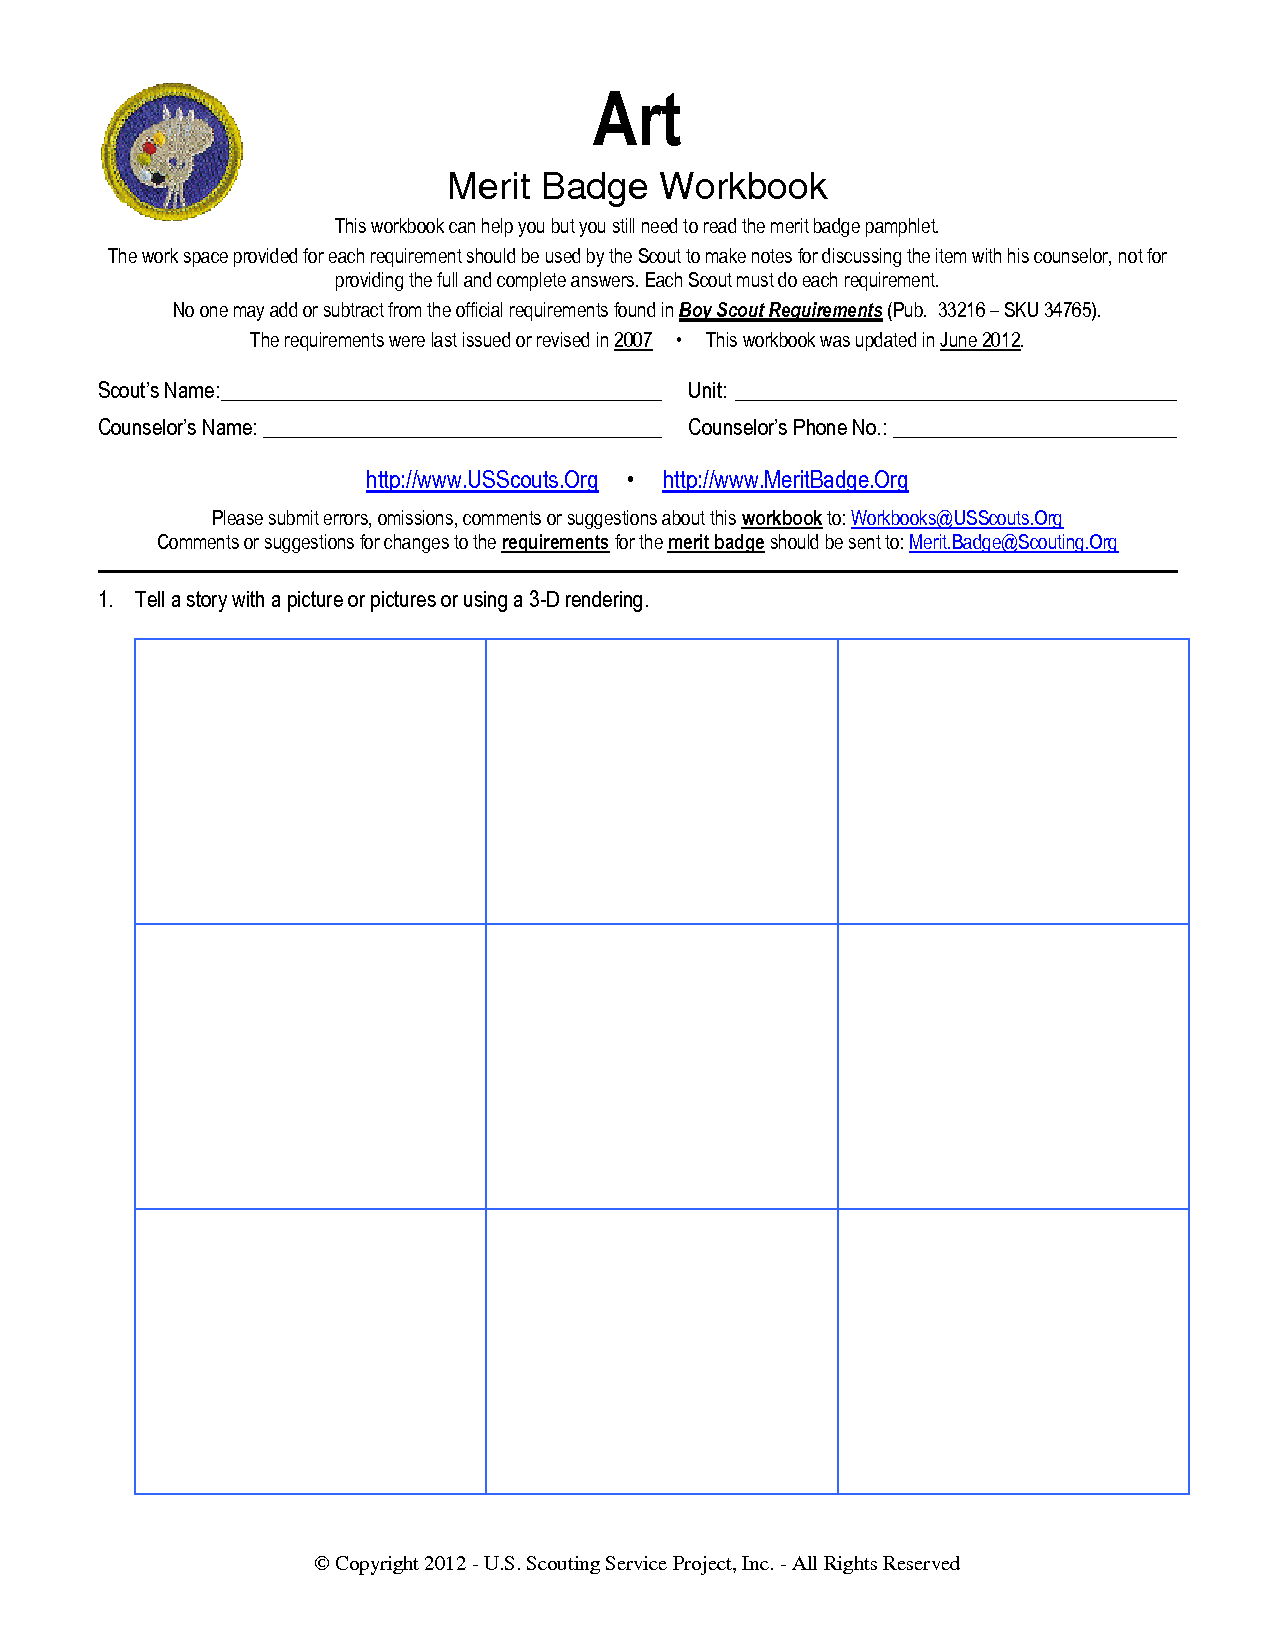 Workbooks usscouts org merit badge worksheets : worksheet. Art Merit Badge Worksheet. Grass Fedjp Worksheet Study Site